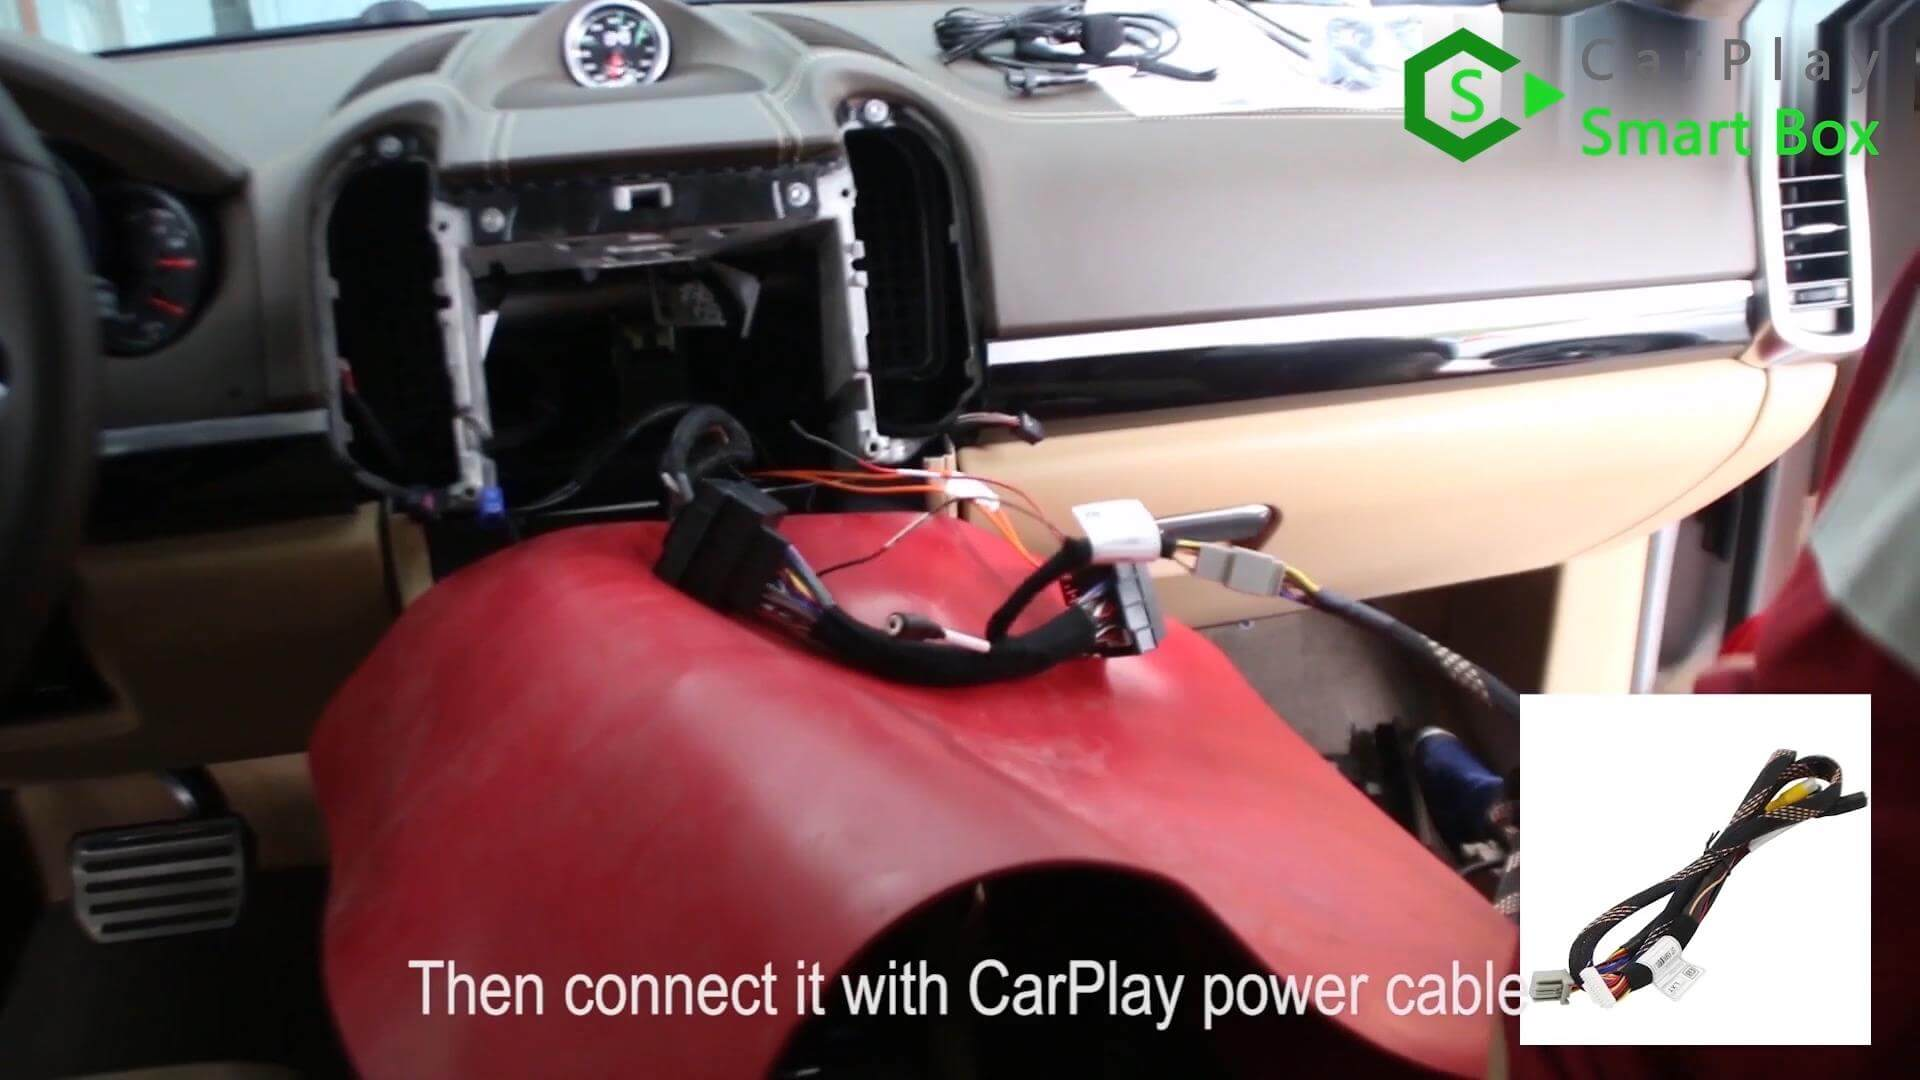 9. Then connect it with CarPlay power cable -  Step by Step Retrofit Porsche Cayenne PCM3.1 WIFI Wireless Apple CarPlay - CarPlay Smart Box